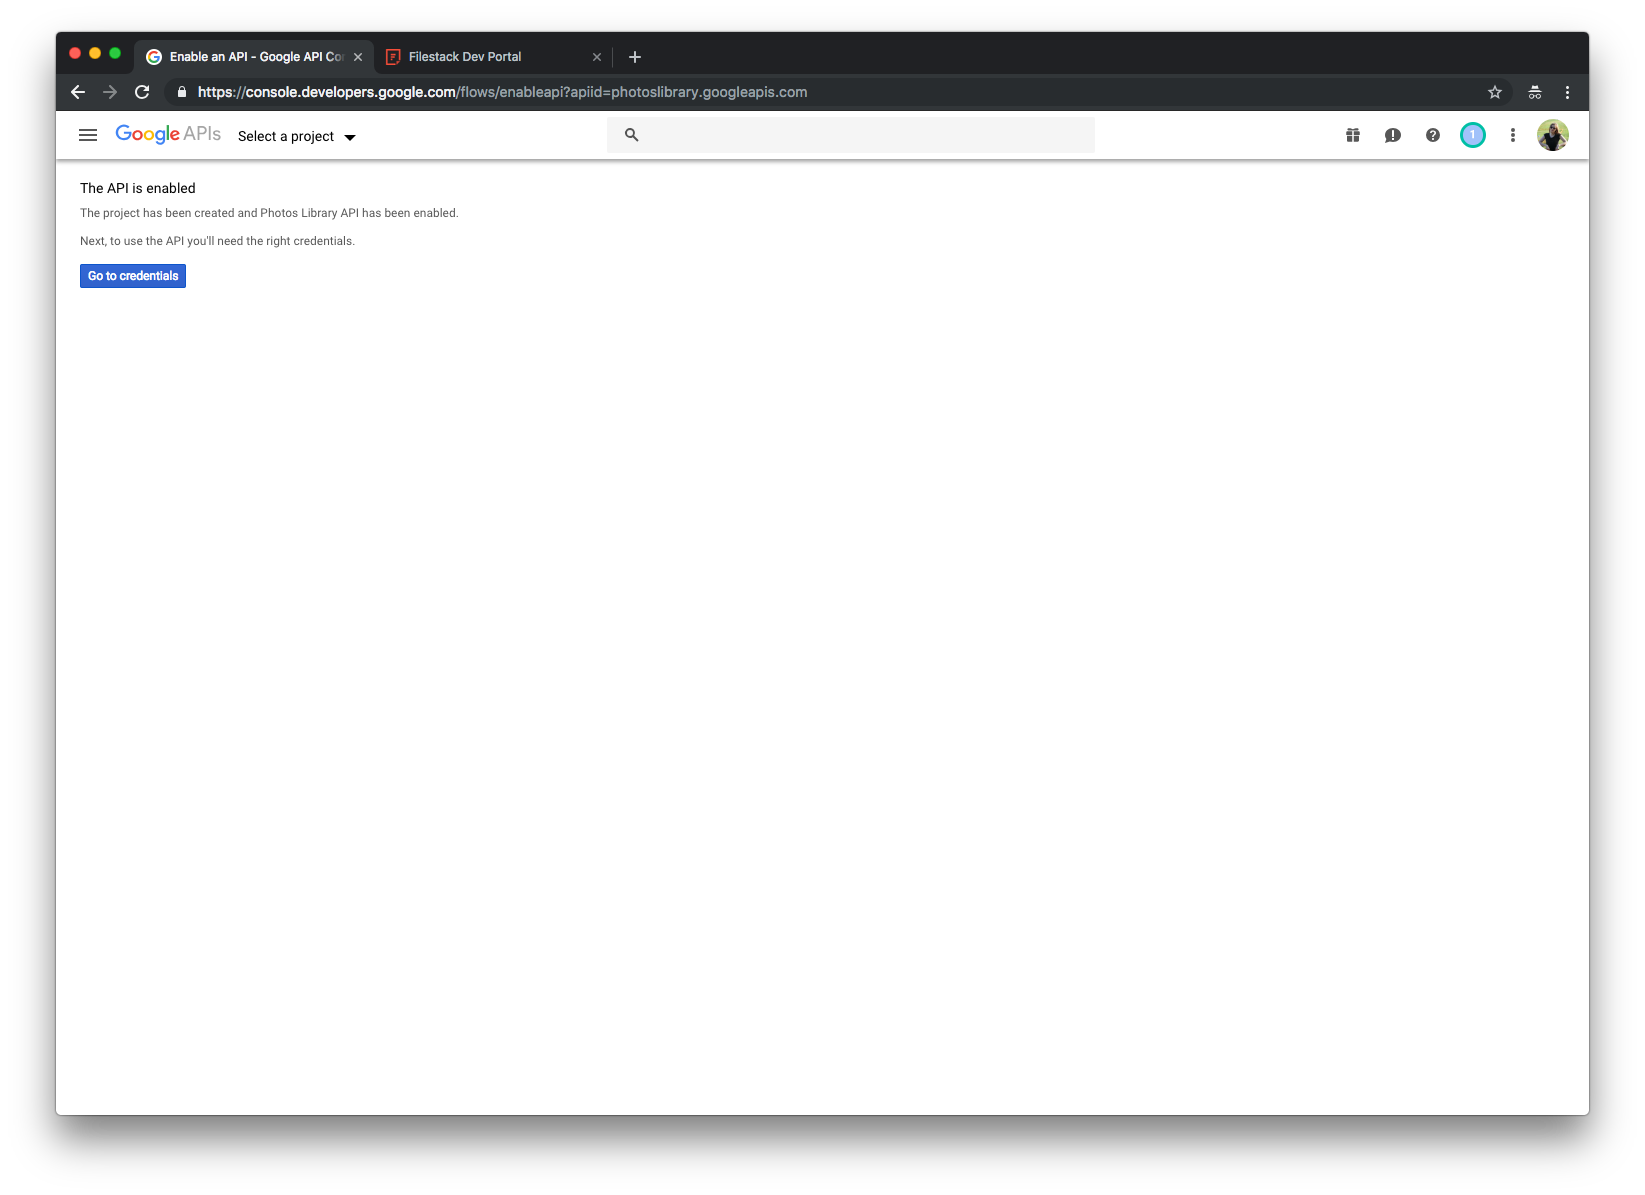 Screenshot showing The API is enabled step in Google API Console